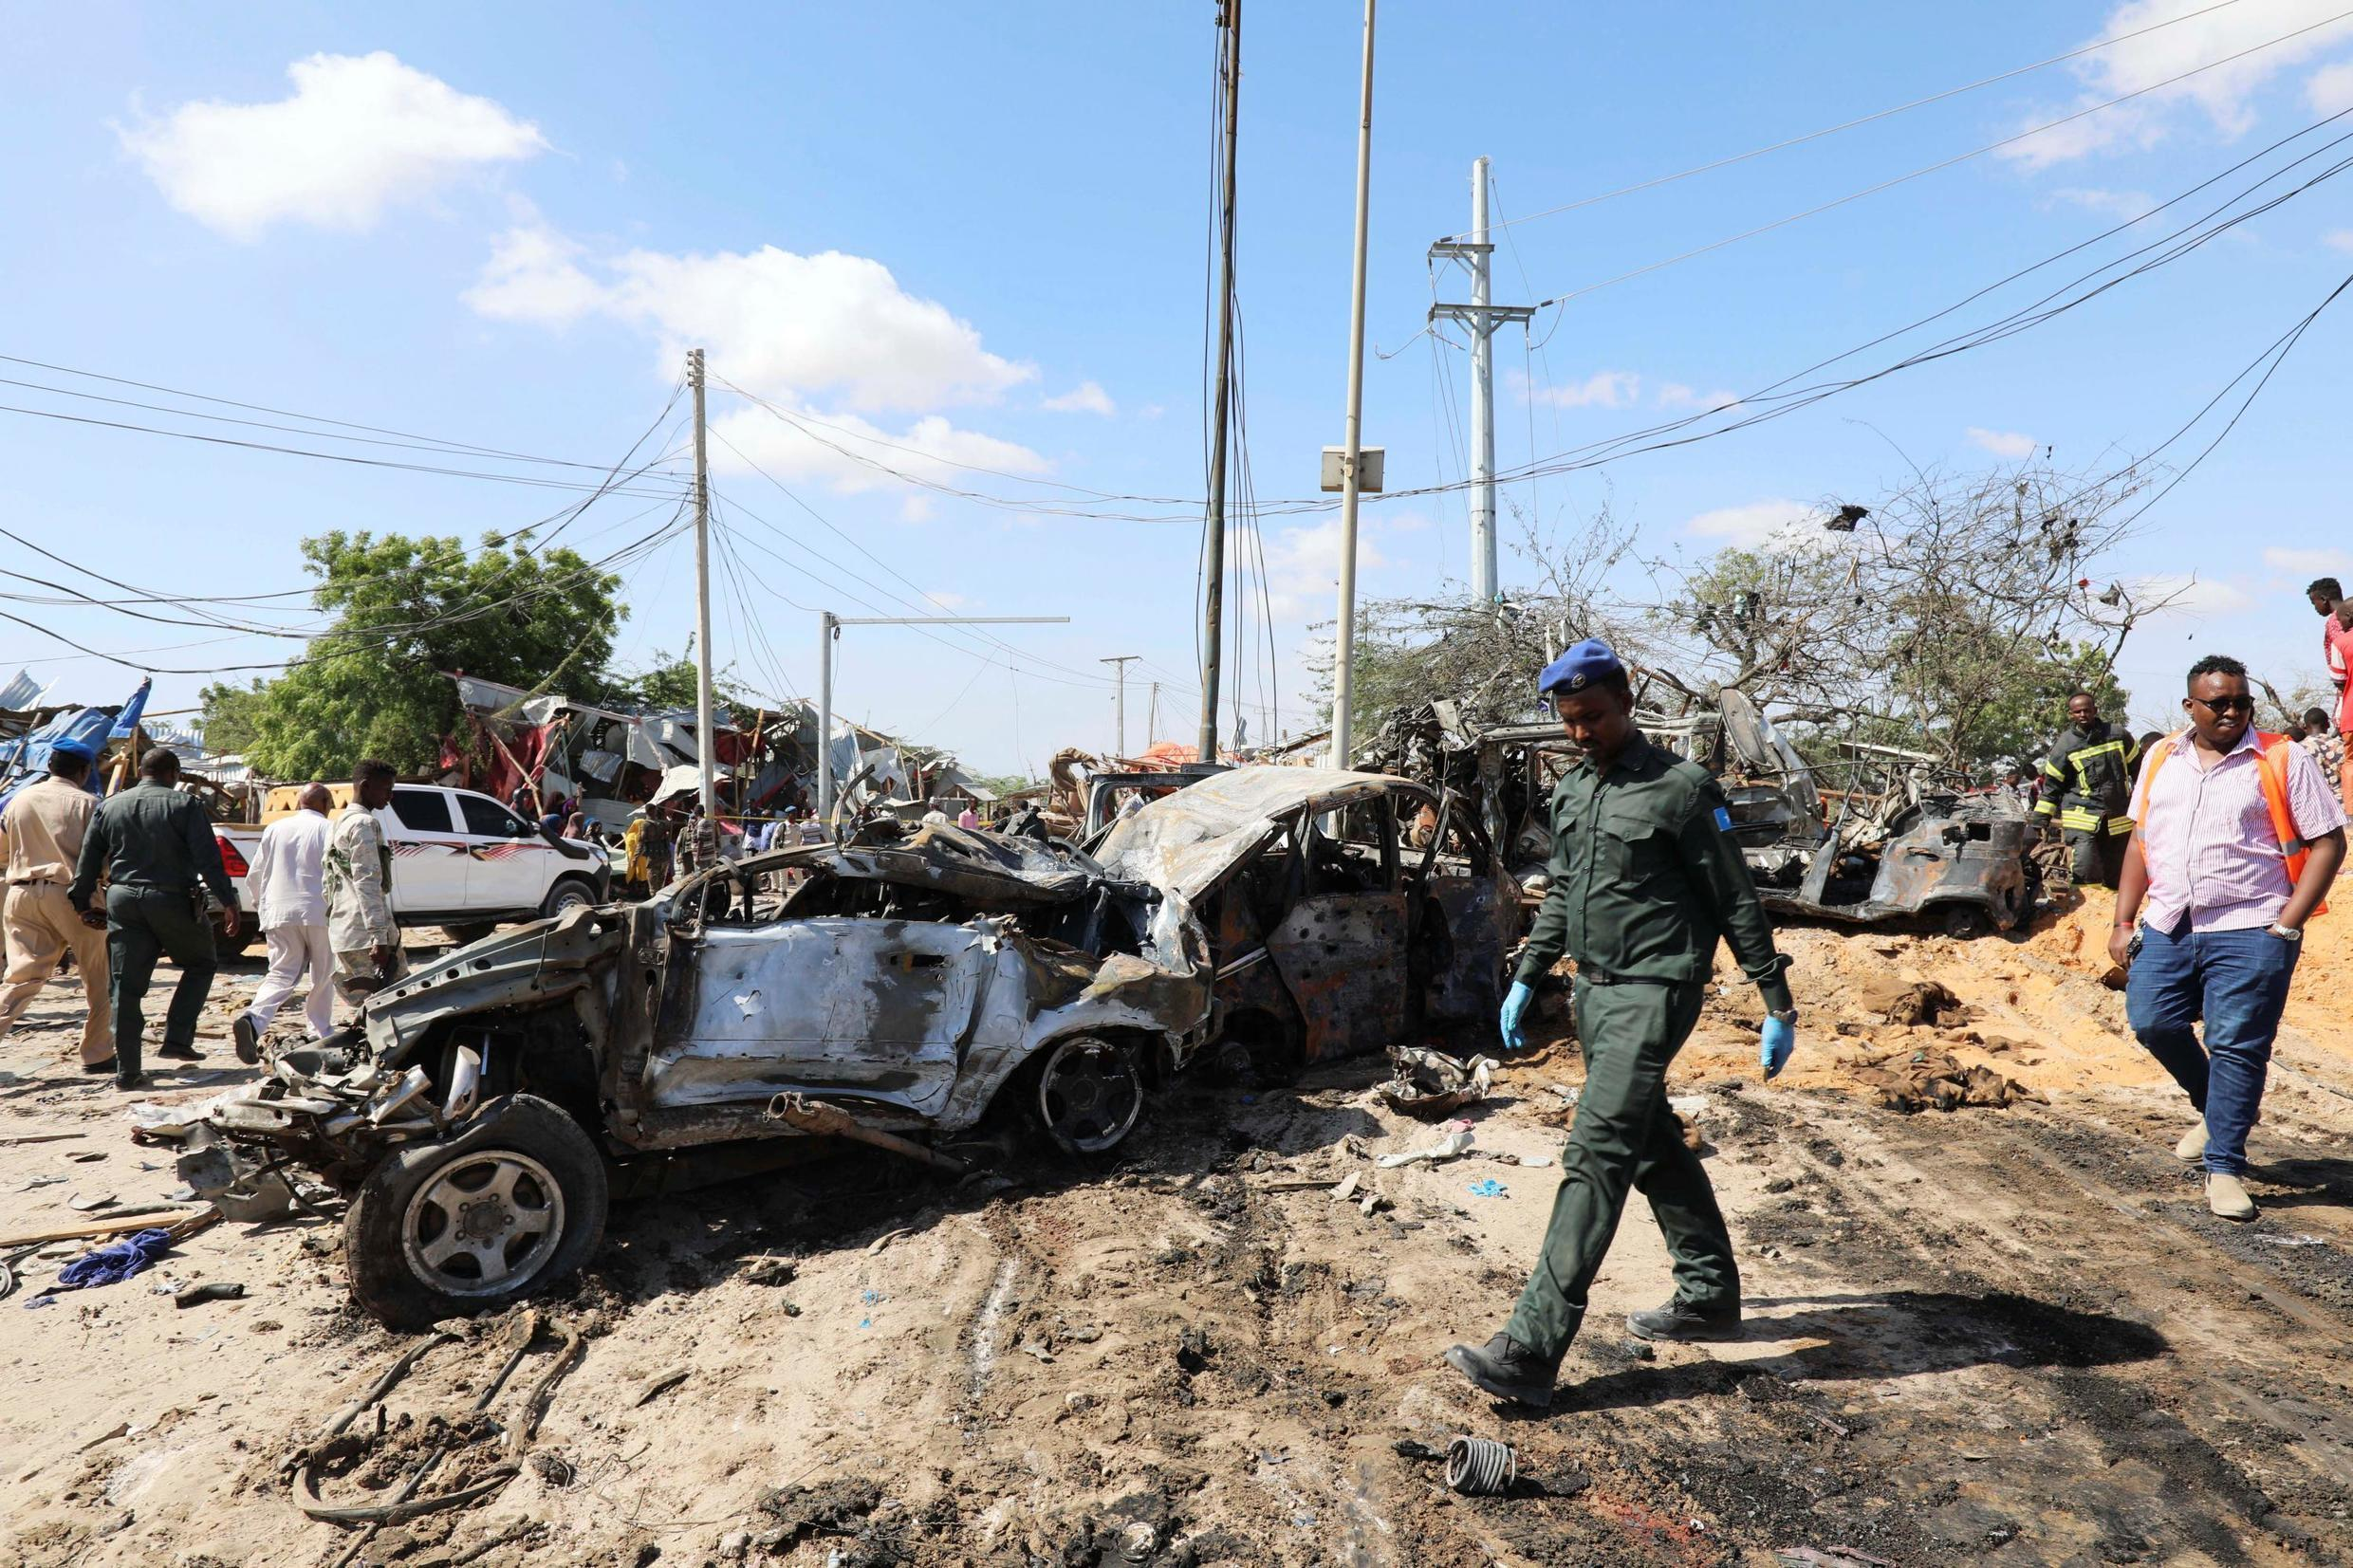 A Somali police officer walks past a wreckage at the scene of a car bomb explosion at a checkpoint in Mogadishu,28 December, 2019.